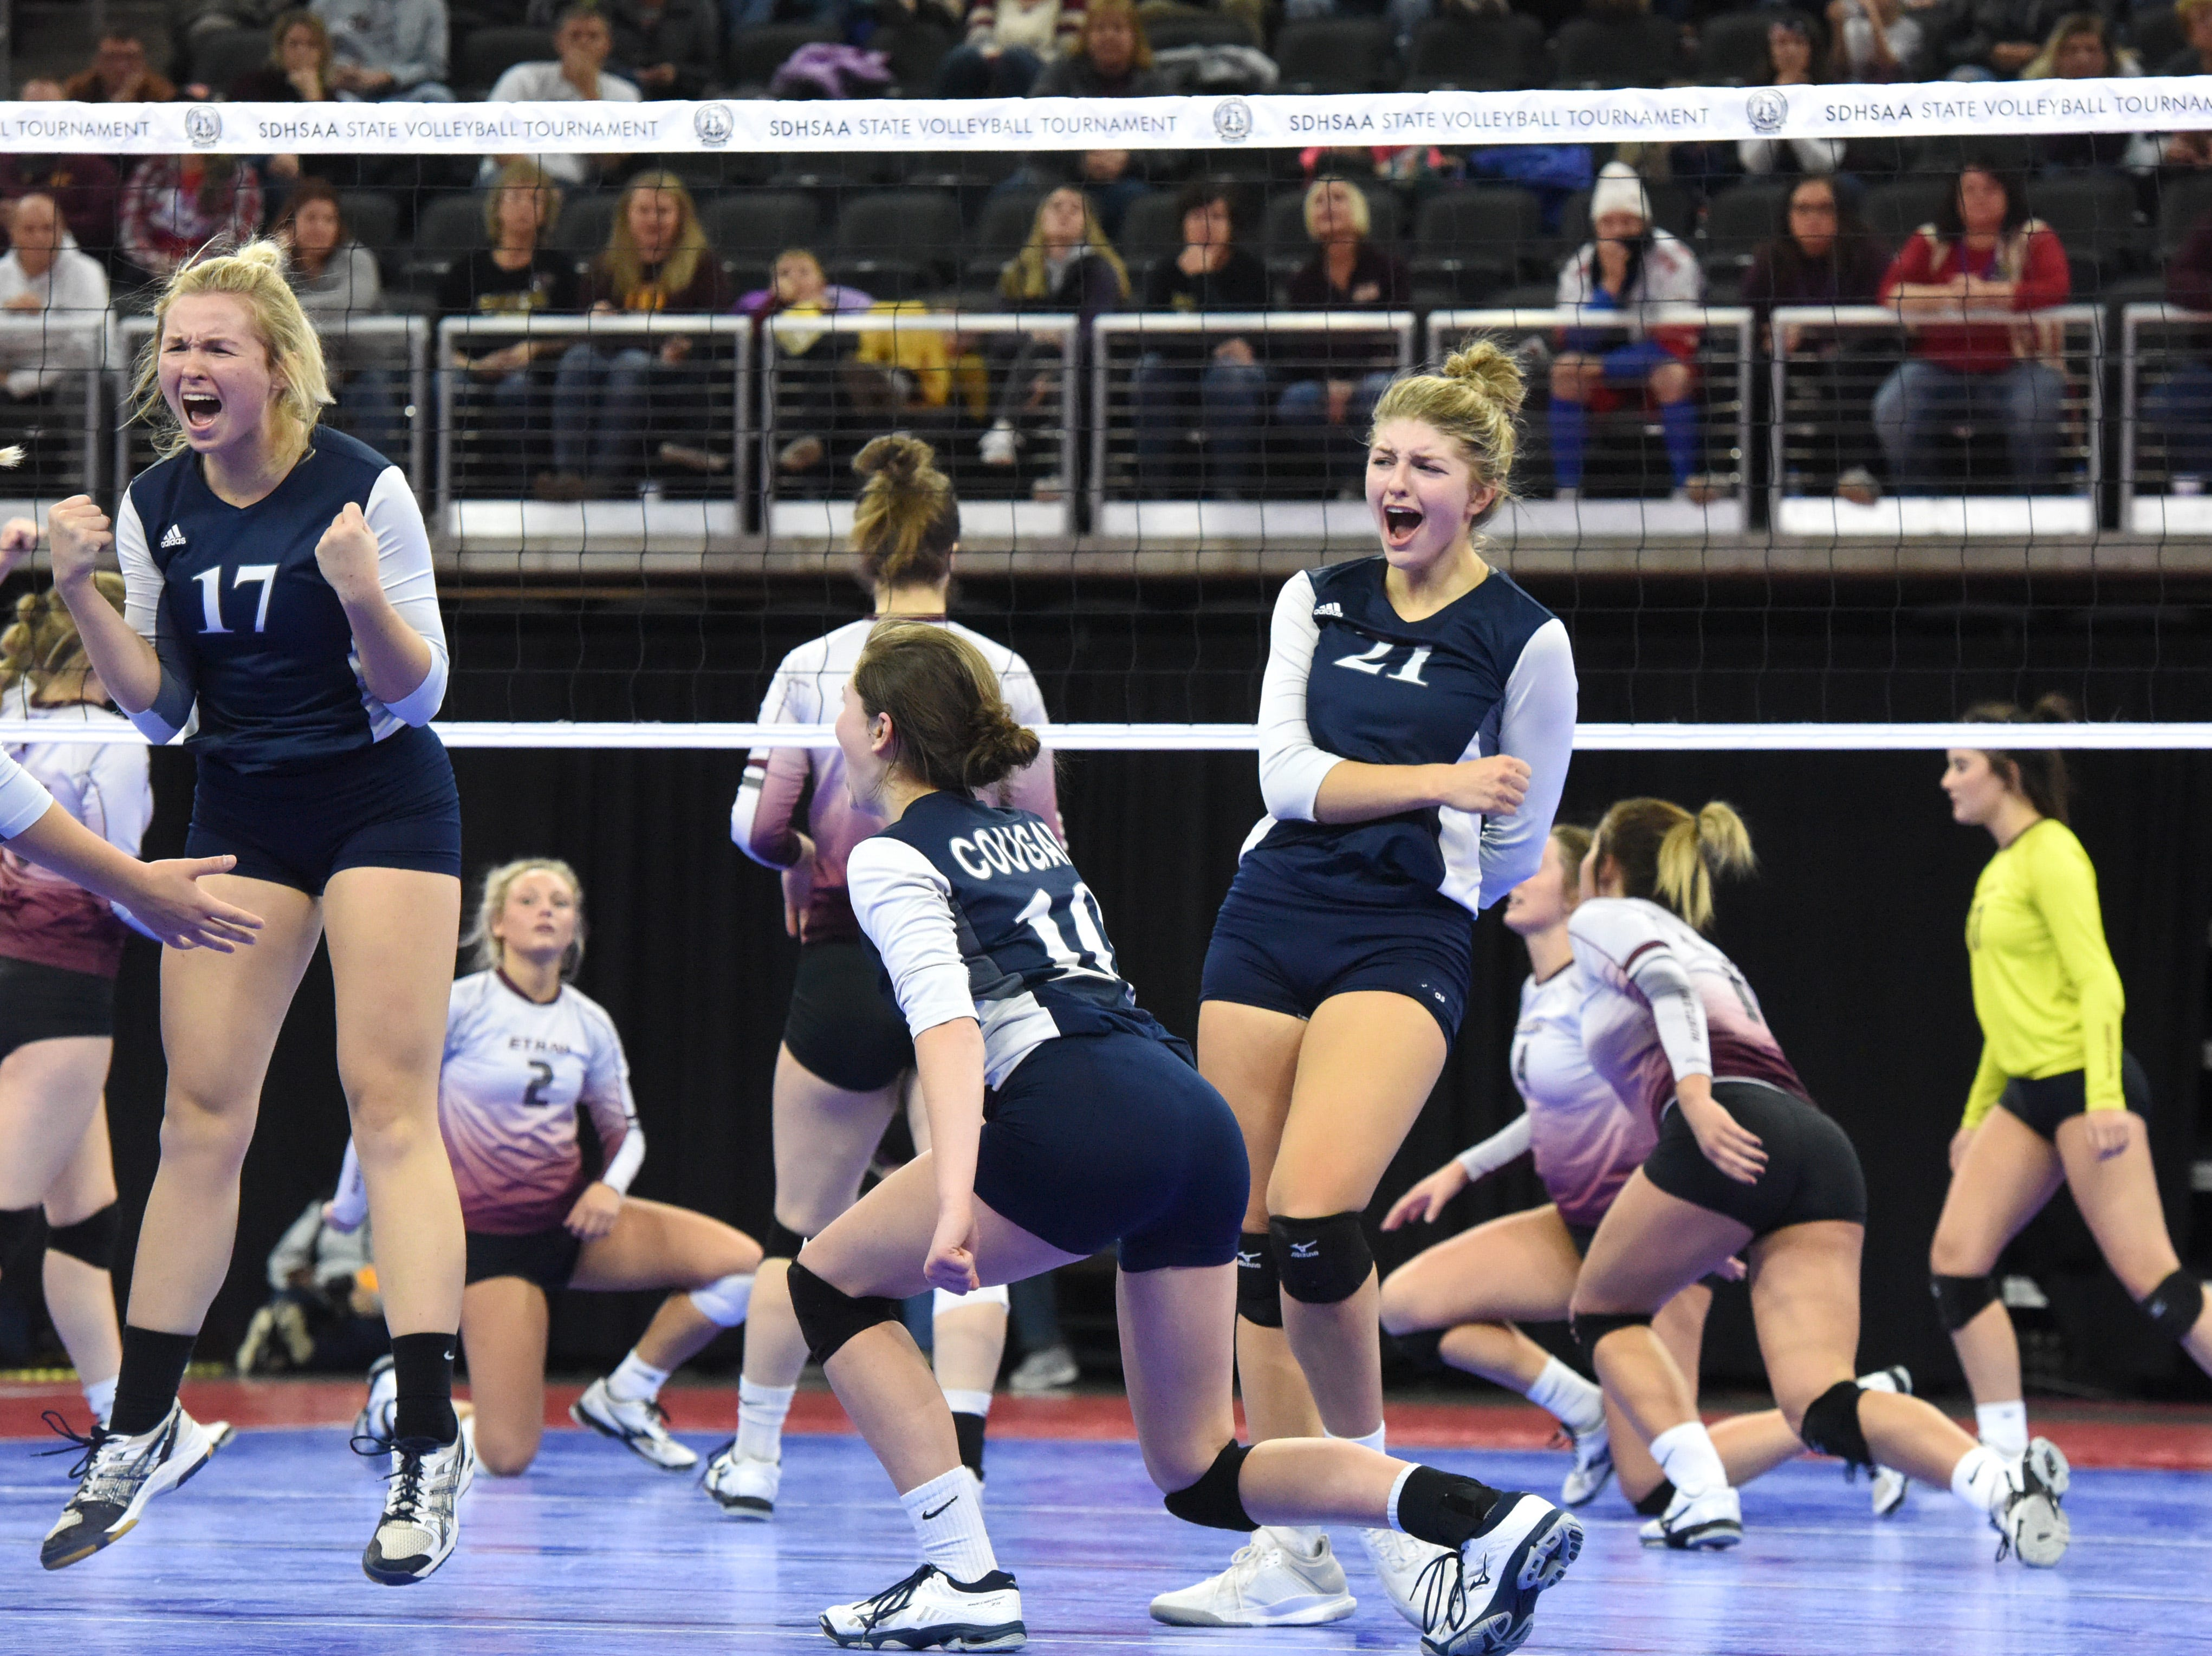 Burke players react during a match against Ethan, Friday, Nov. 16, 2018, at the Denny Sanford Premier Center in Sioux Falls, S.D.